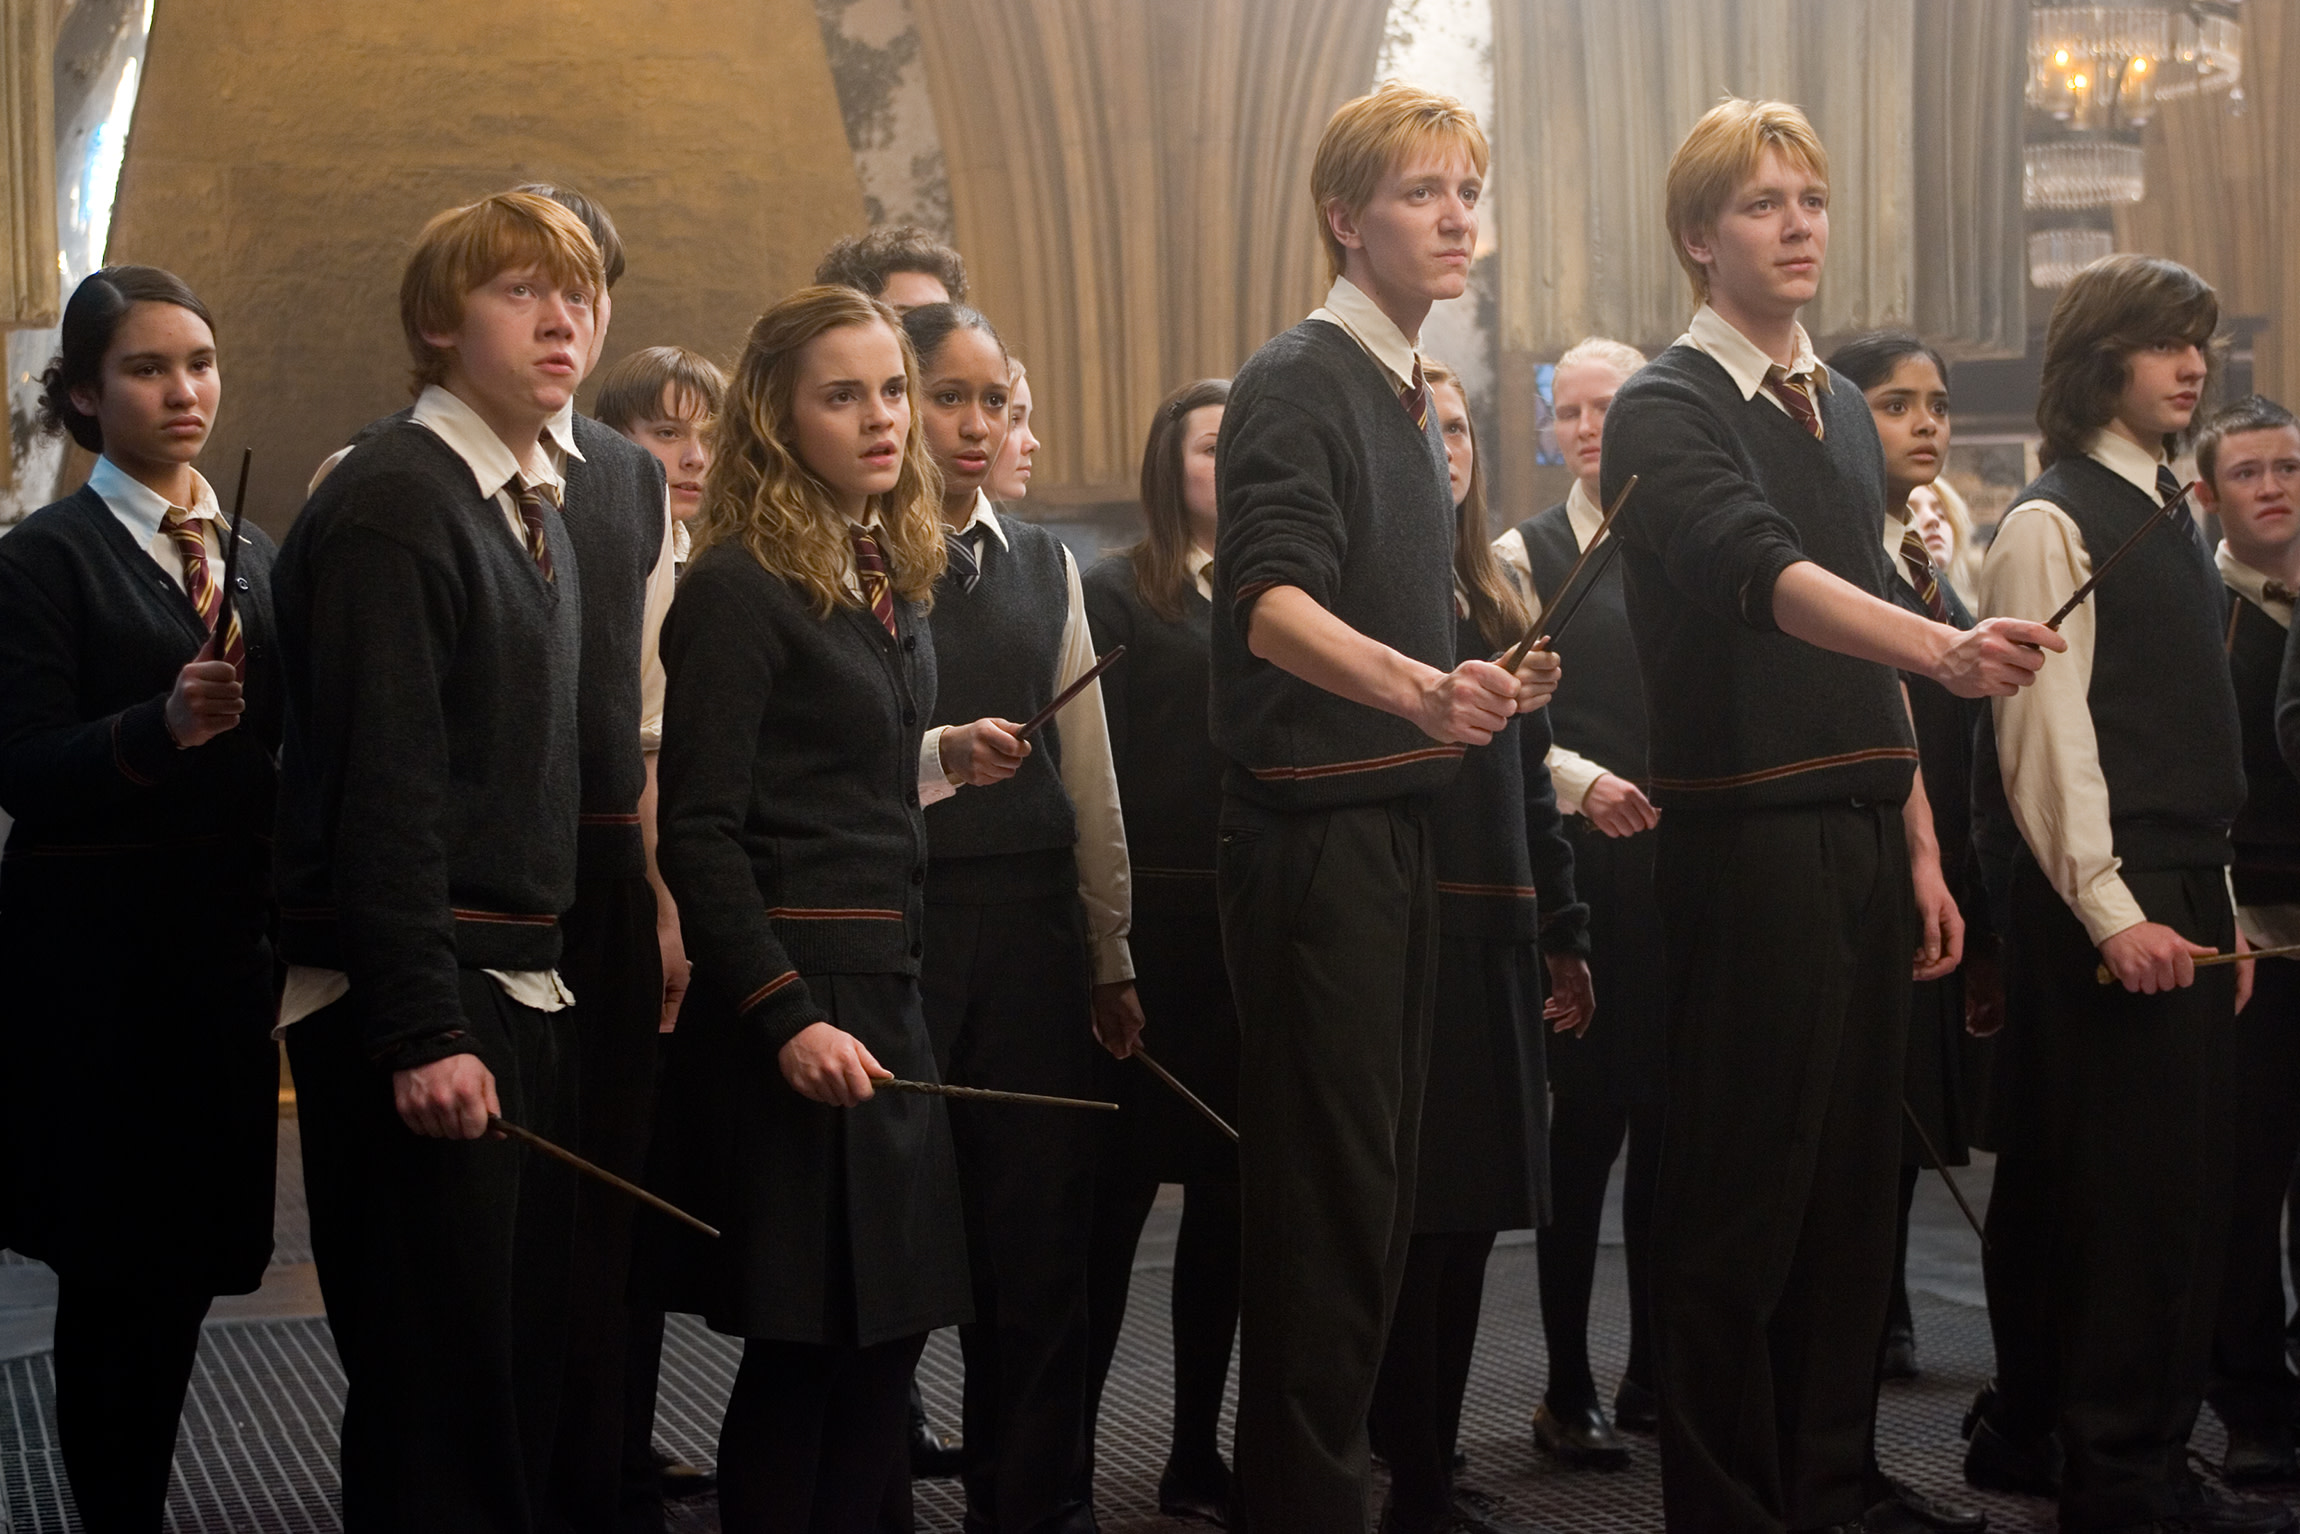 WB-HP-F5-order-of-phoenix-dumbledores-army